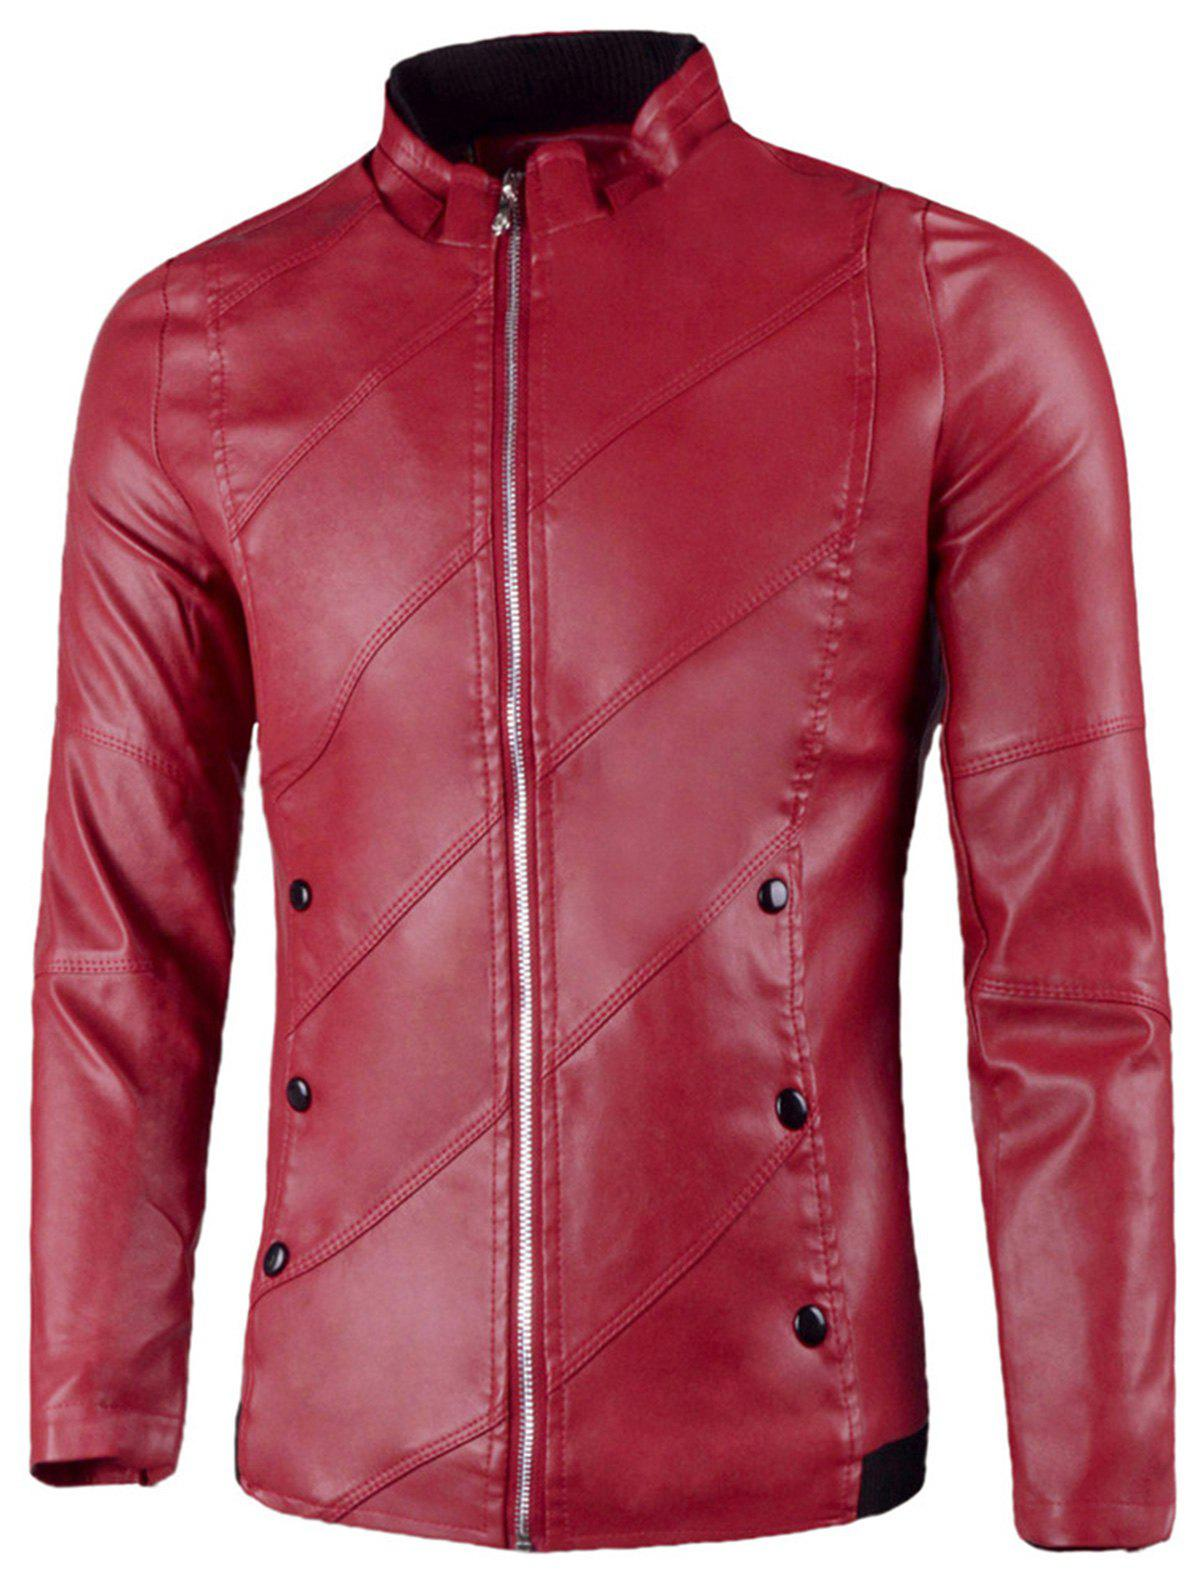 Flap Button Embellished Zip Up Faux Leather Jacket - RED 2XL